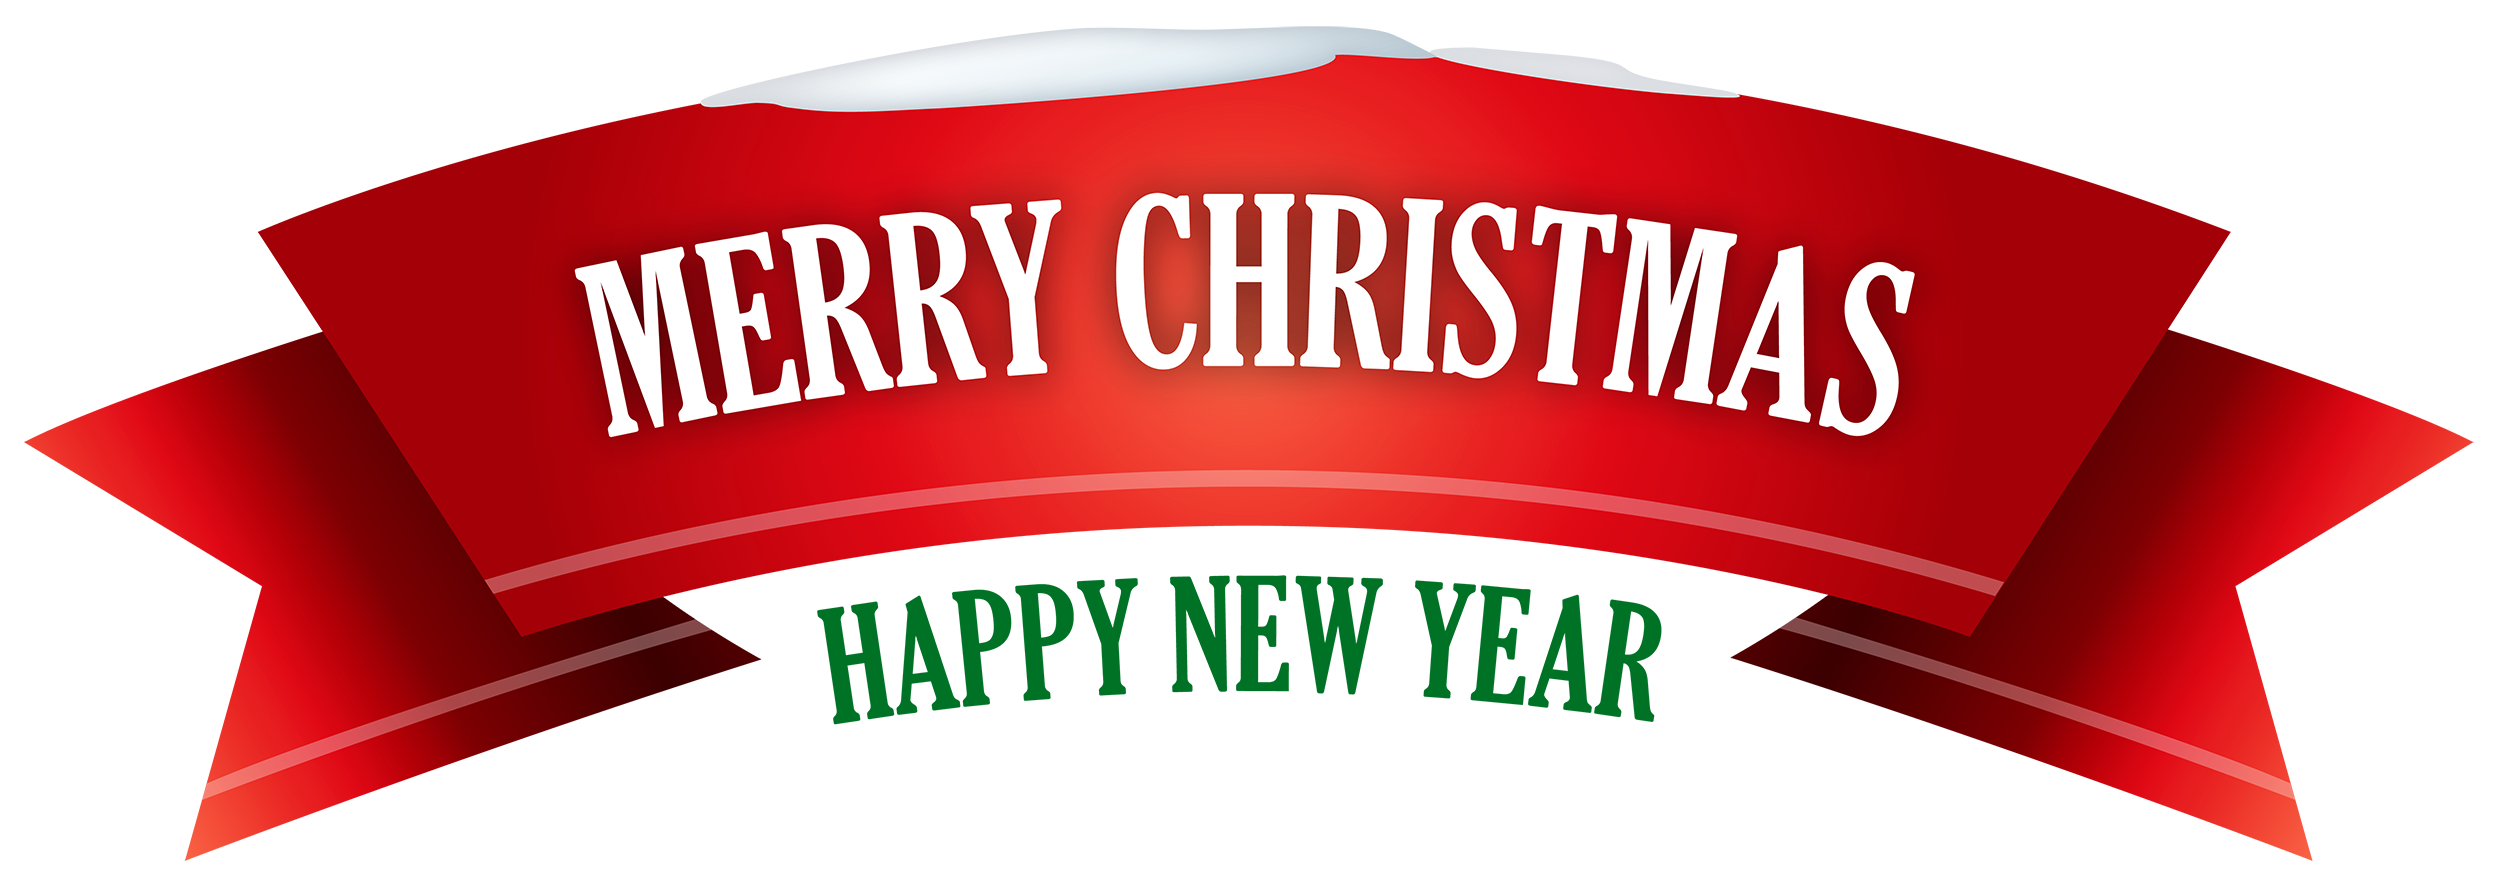 Merry christmas png acur. Clipart heart banner